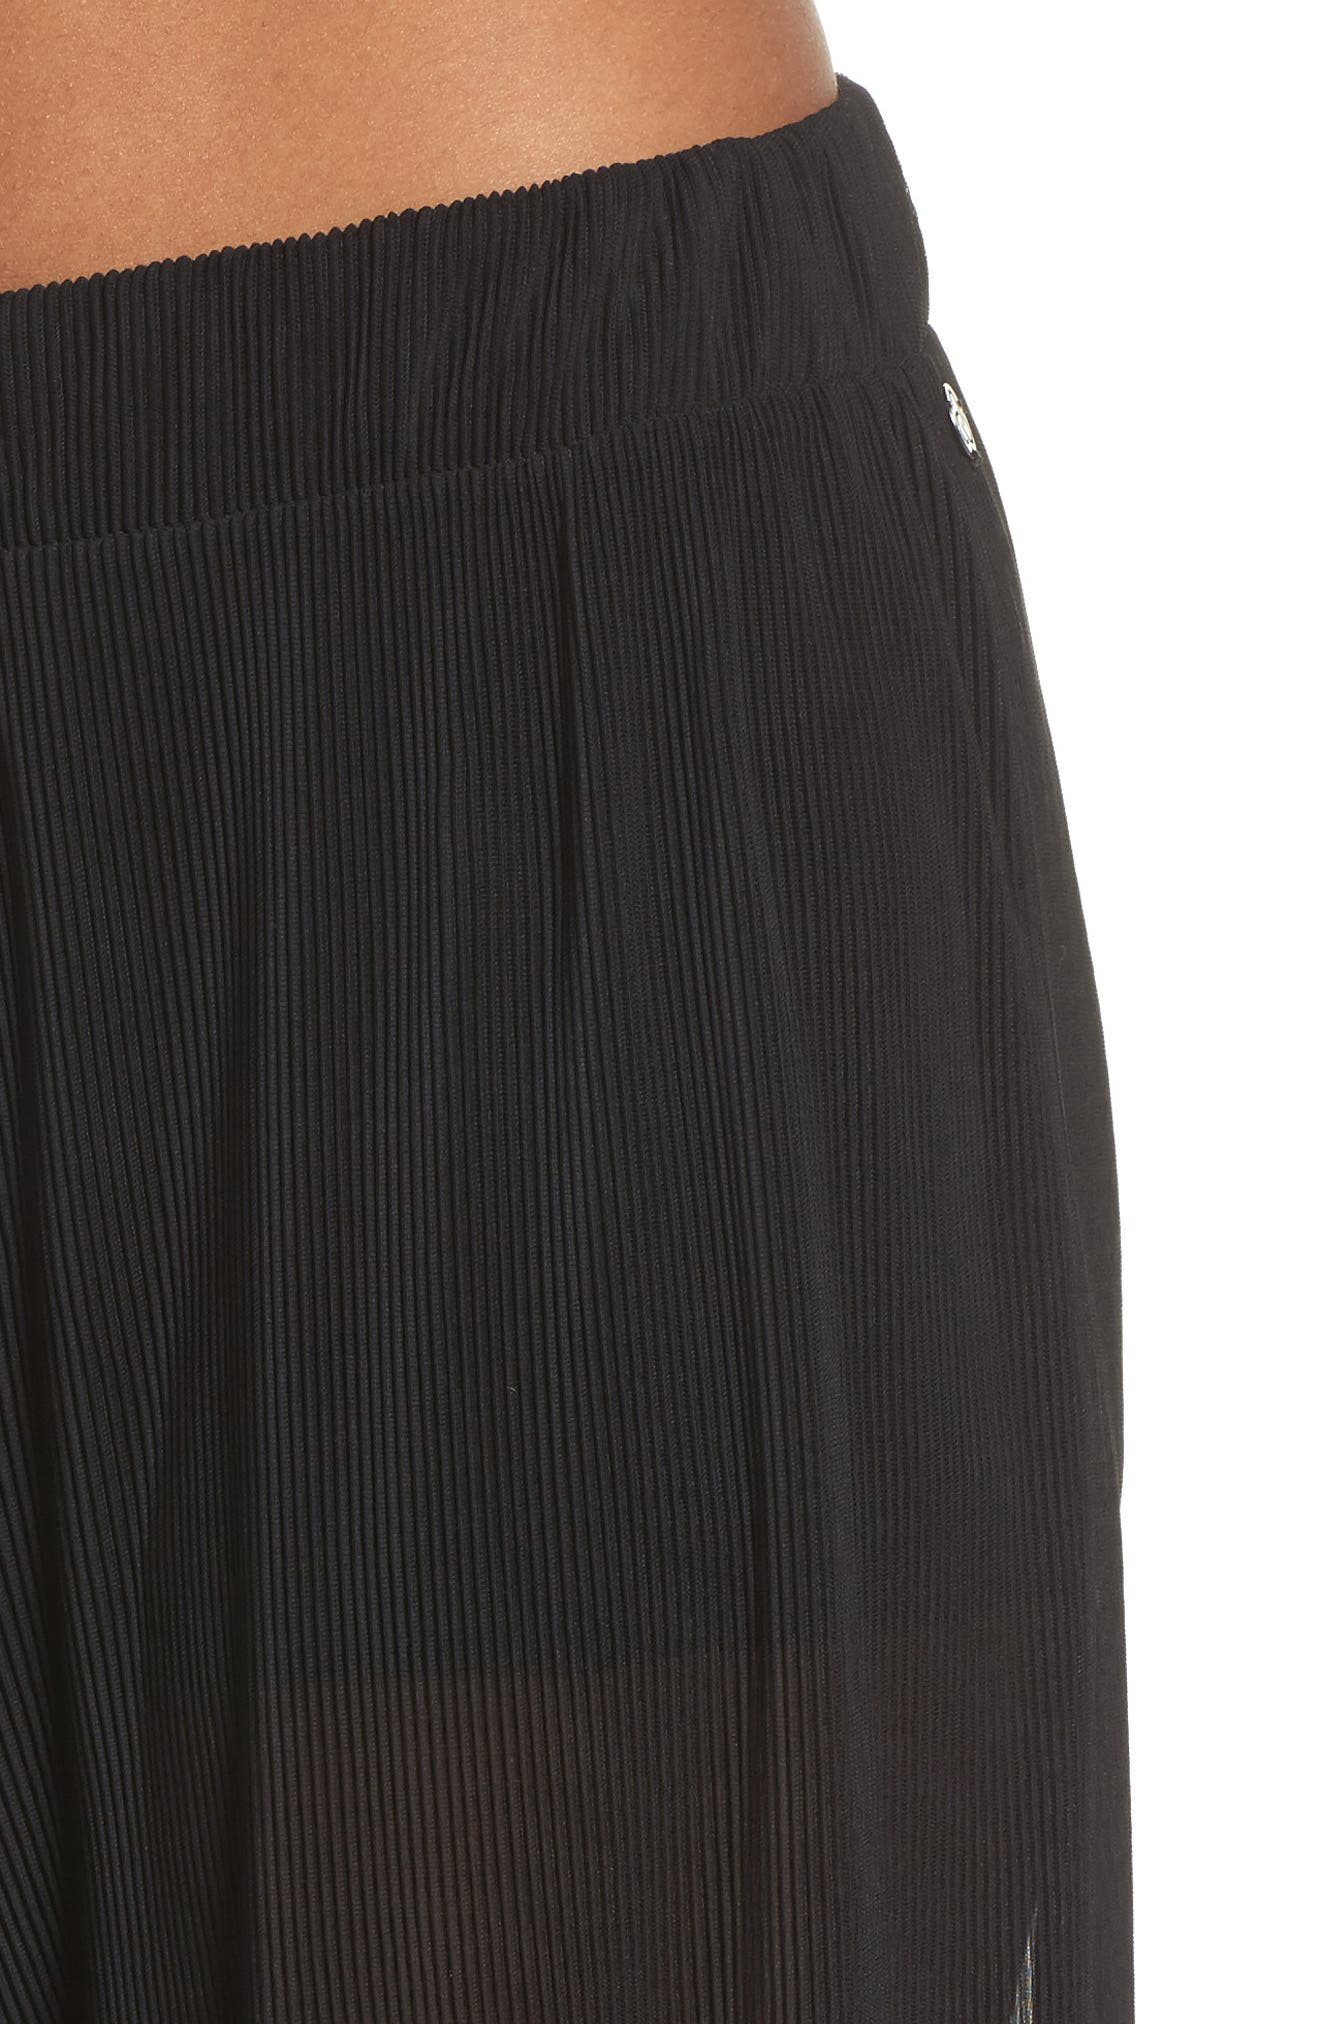 ZELLA,                             Pleated Culottes,                             Alternate thumbnail 4, color,                             001